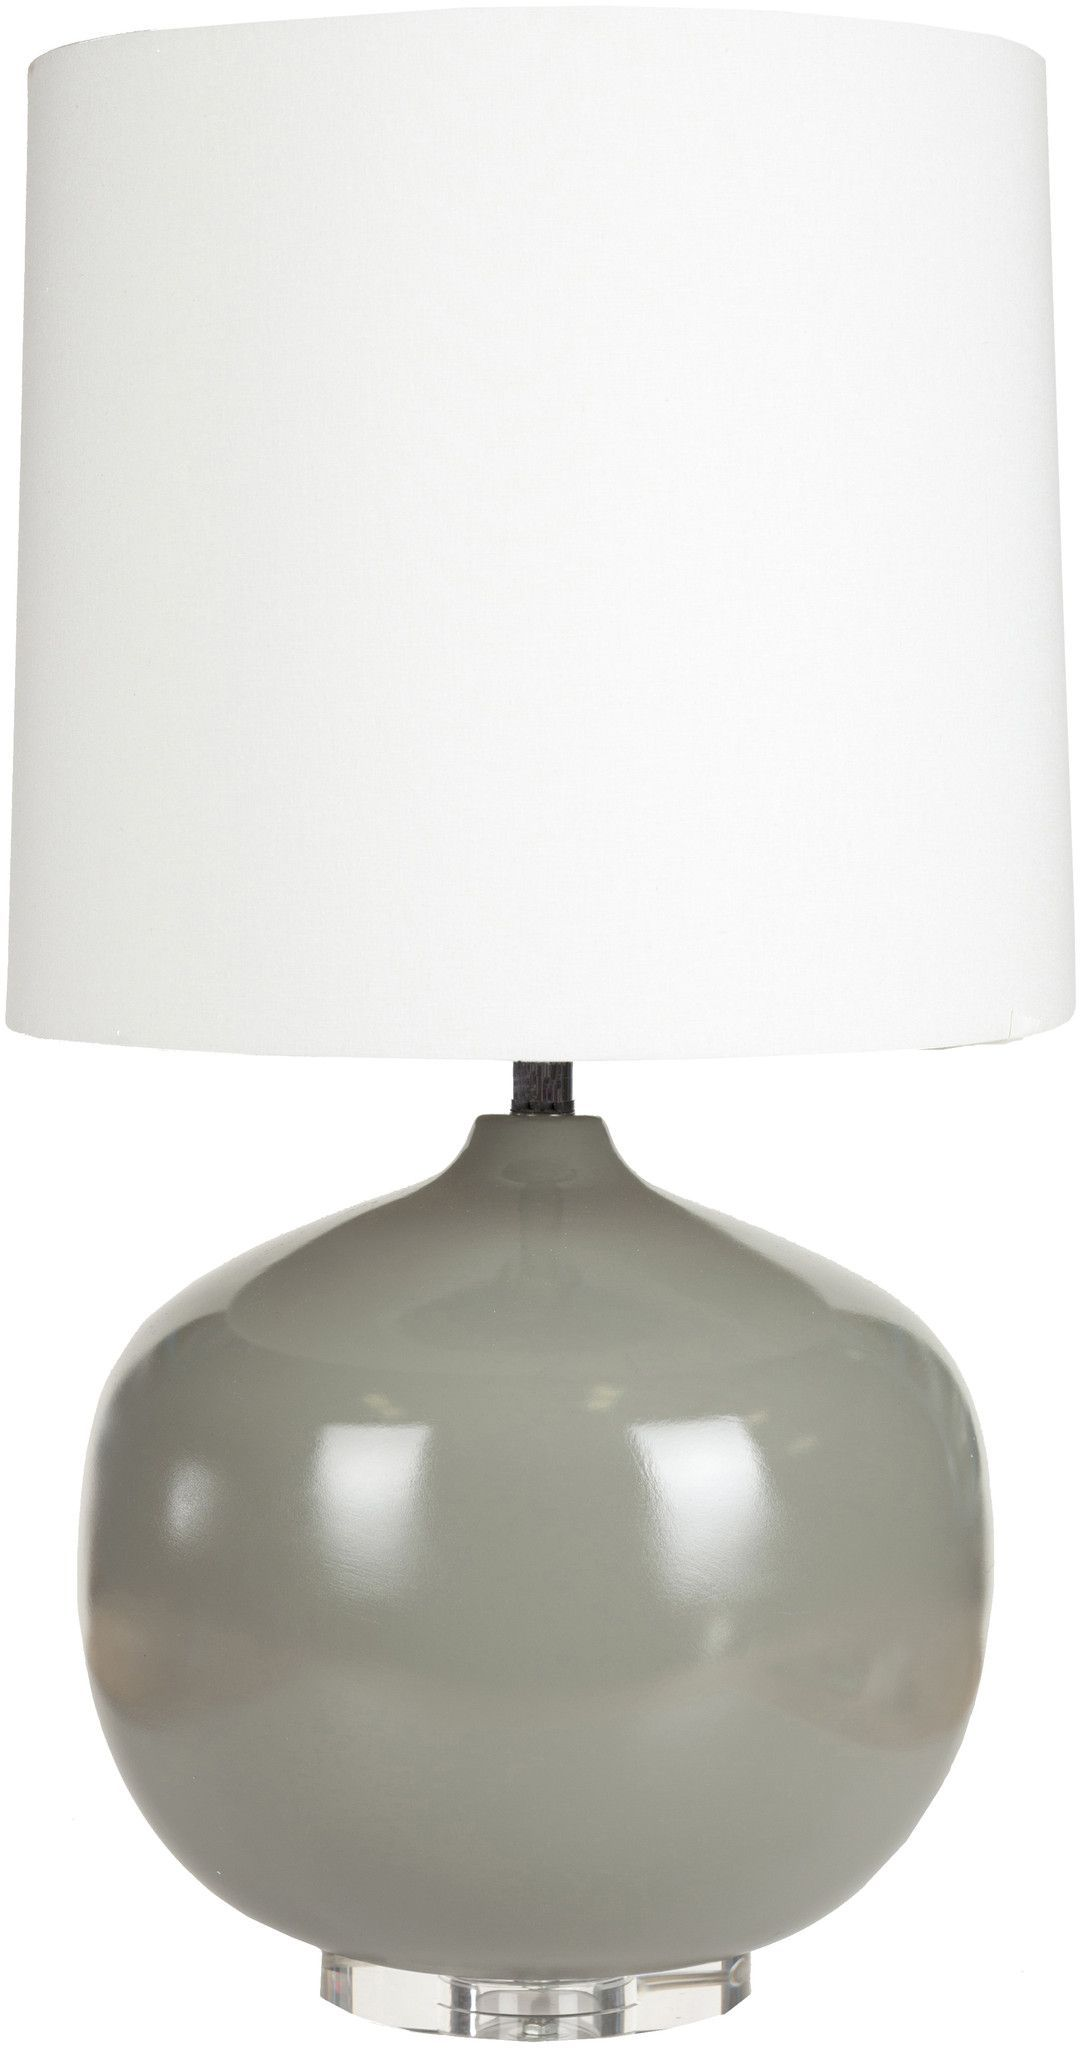 Colt Table Lamp in Grey design by Surya